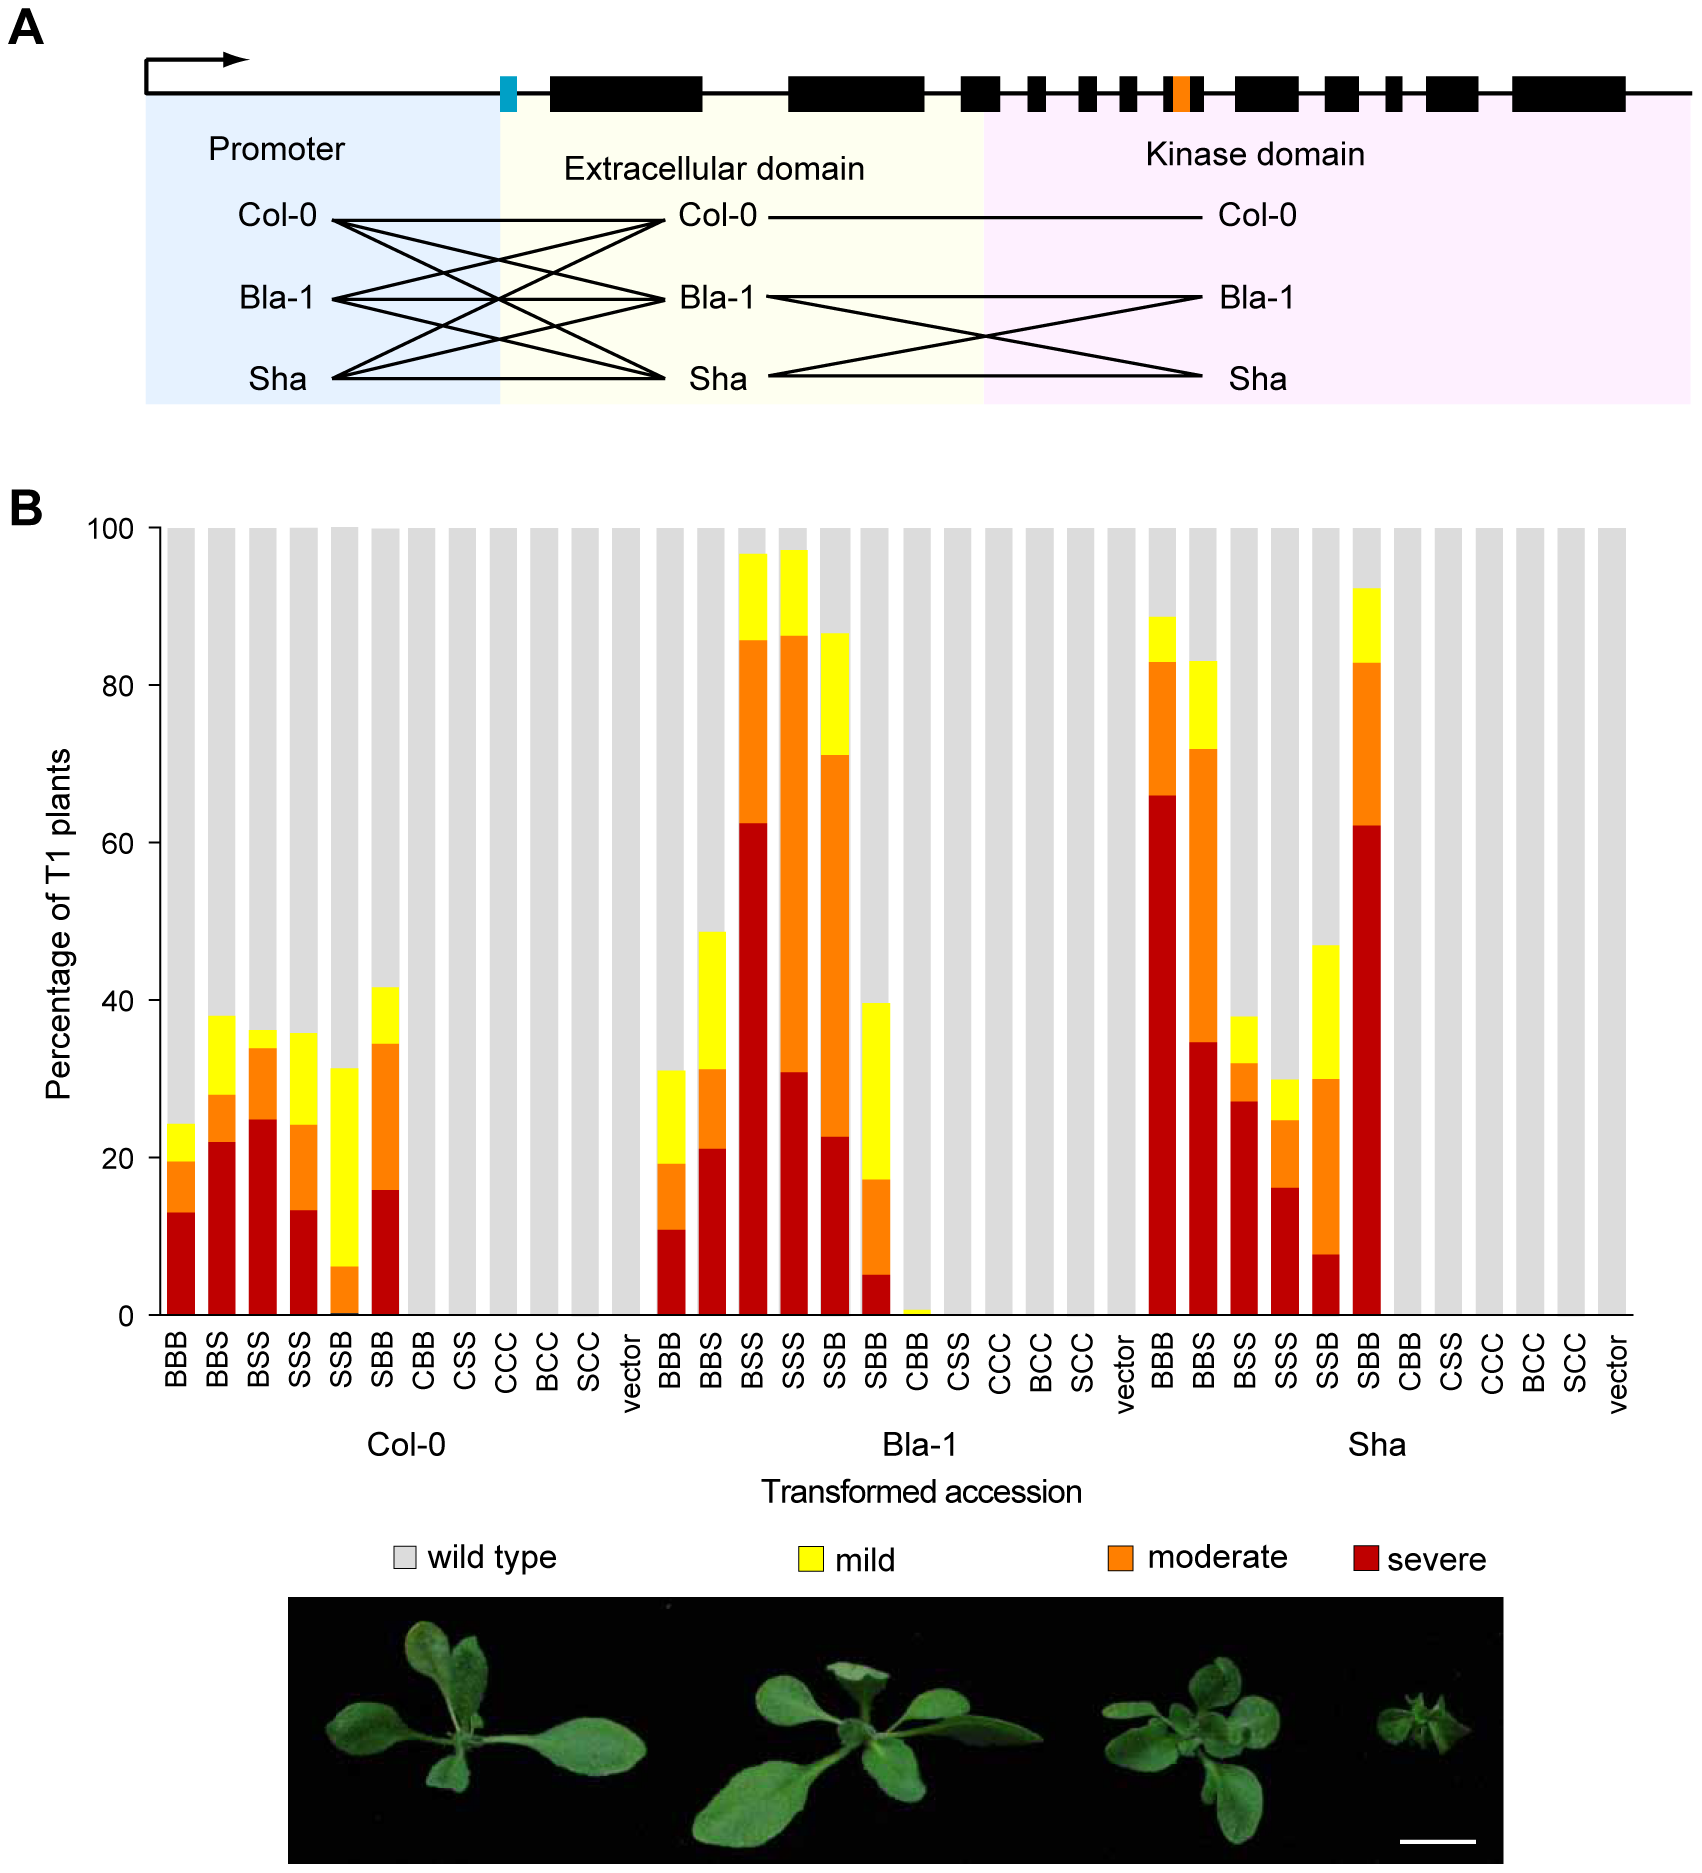 Contribution of both the <i>OAK</i> promoter and extracellular domain to outgrowths.